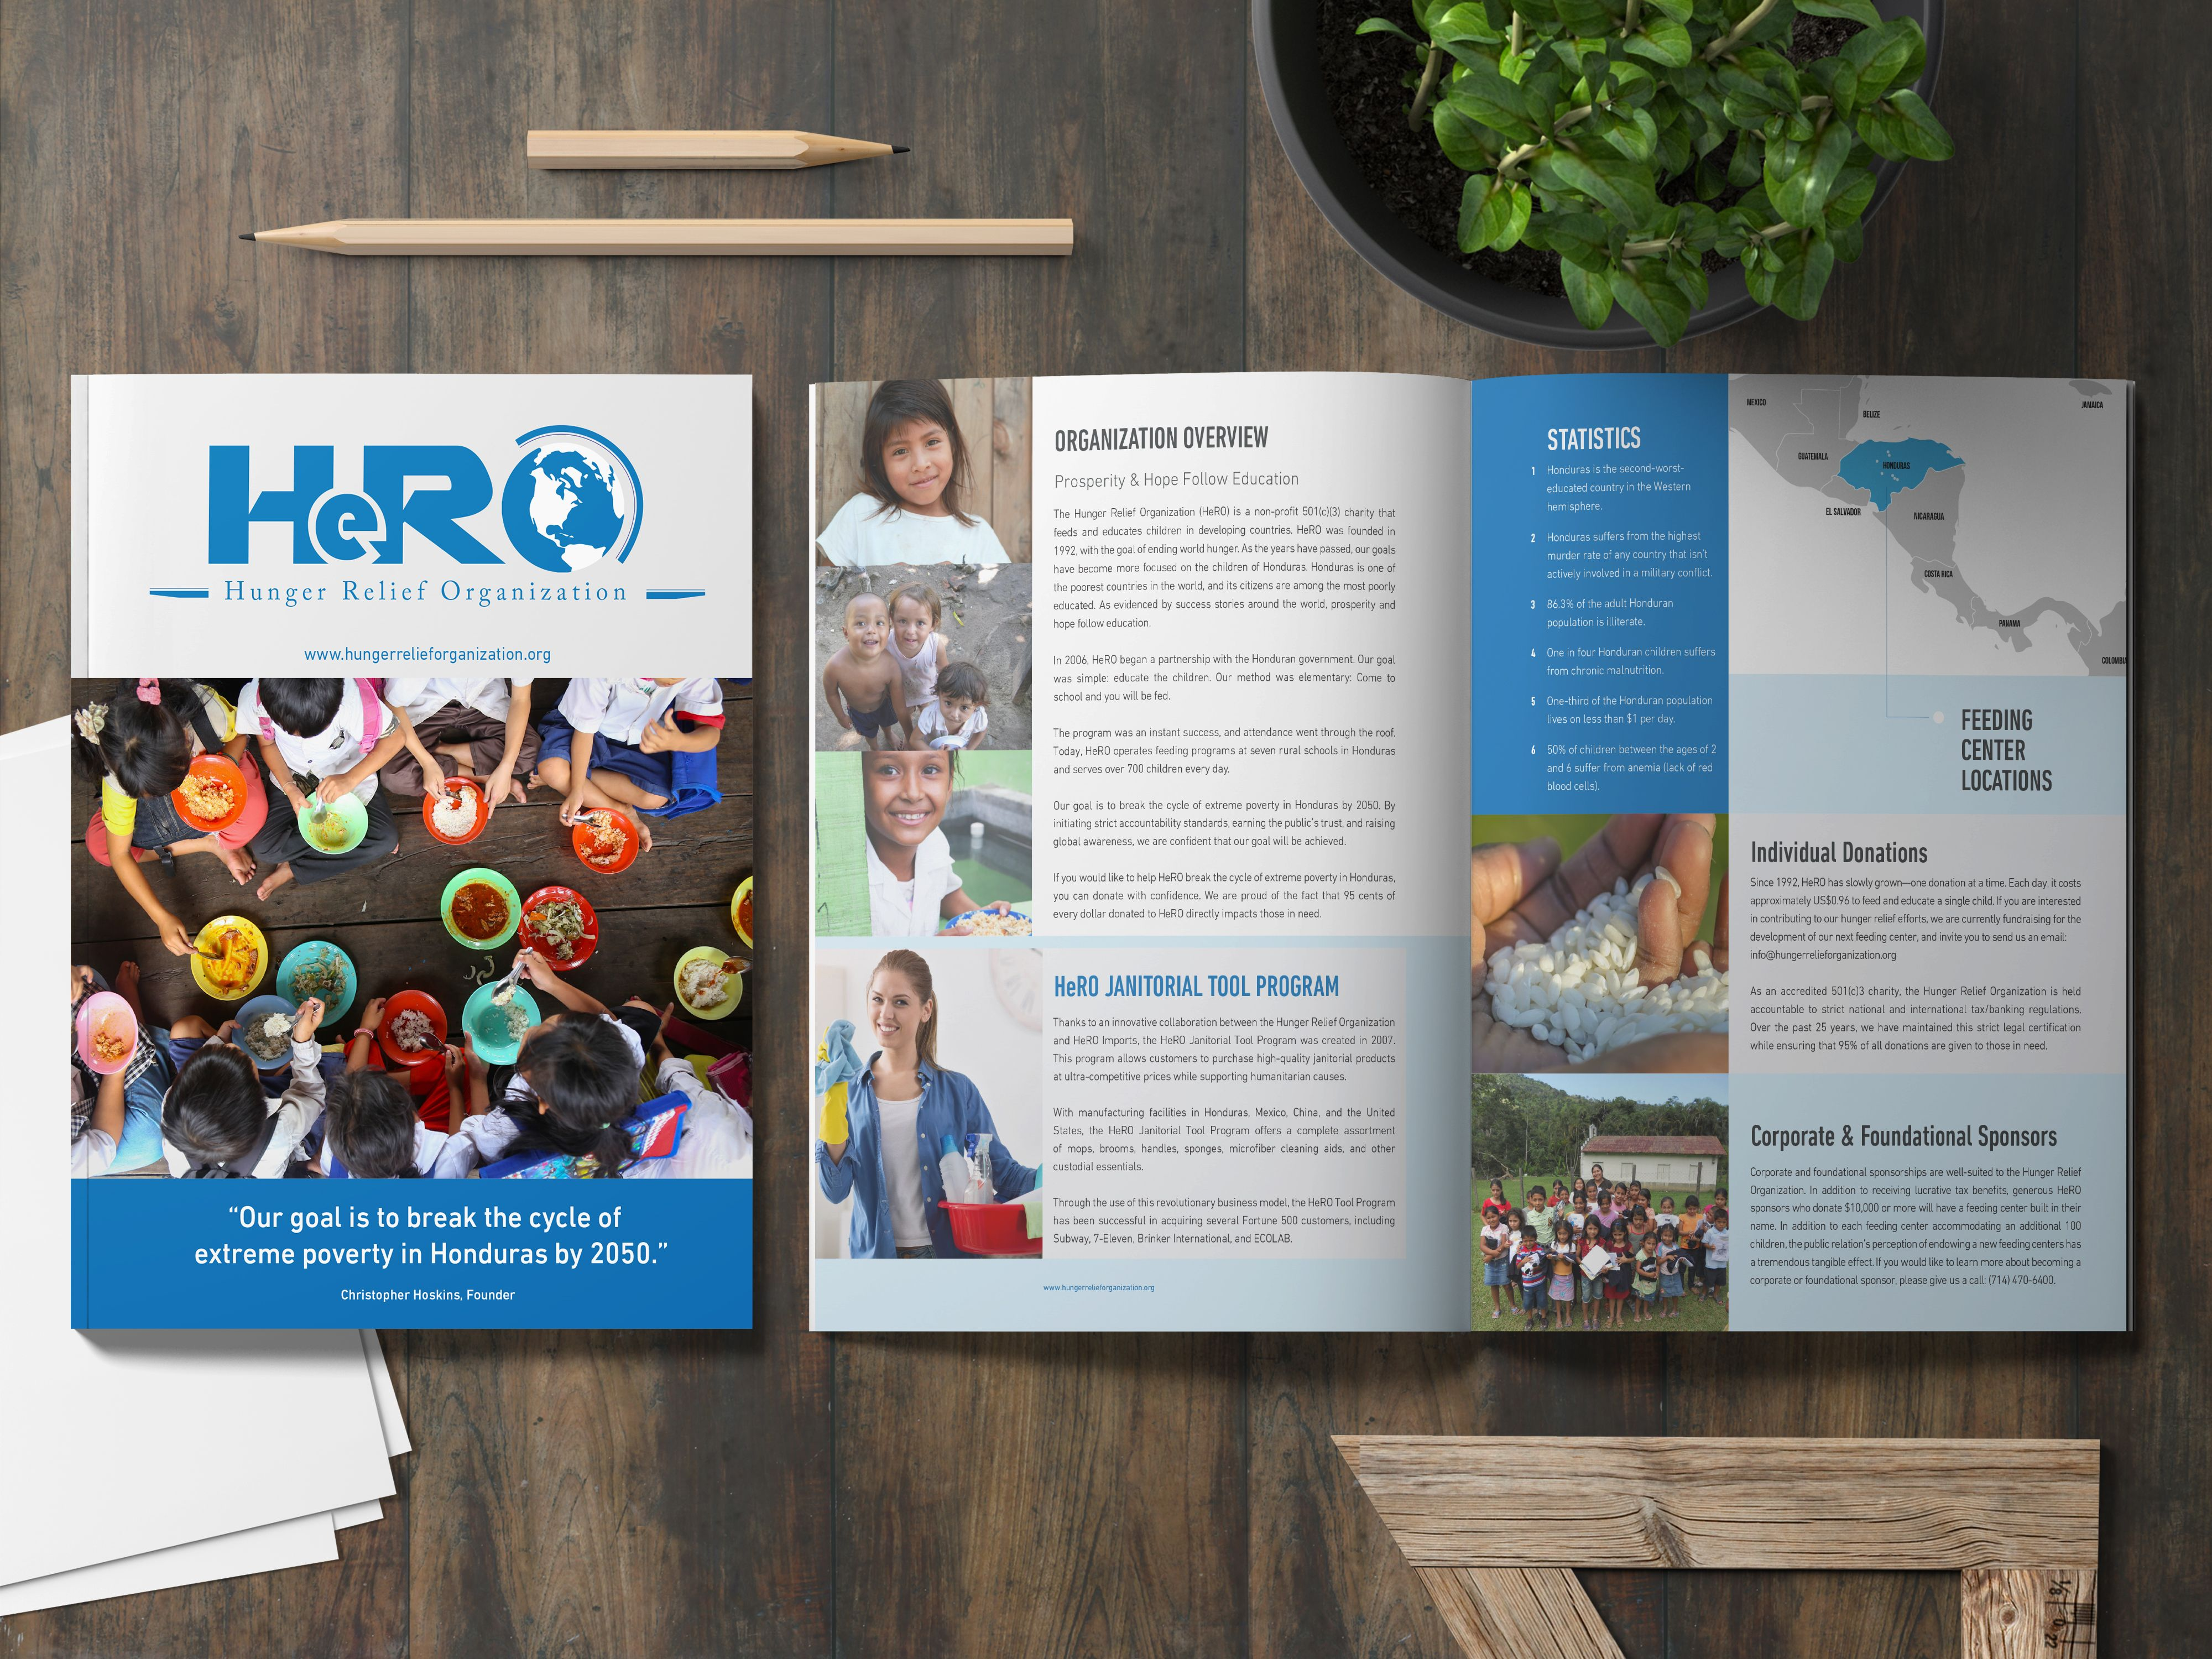 The Hunger Relief Organization Hero A 501 C 3 Non Profit Charity Is Came To Our Team Looking For A Brand Overhaul We Redesigned The Logo Website Business